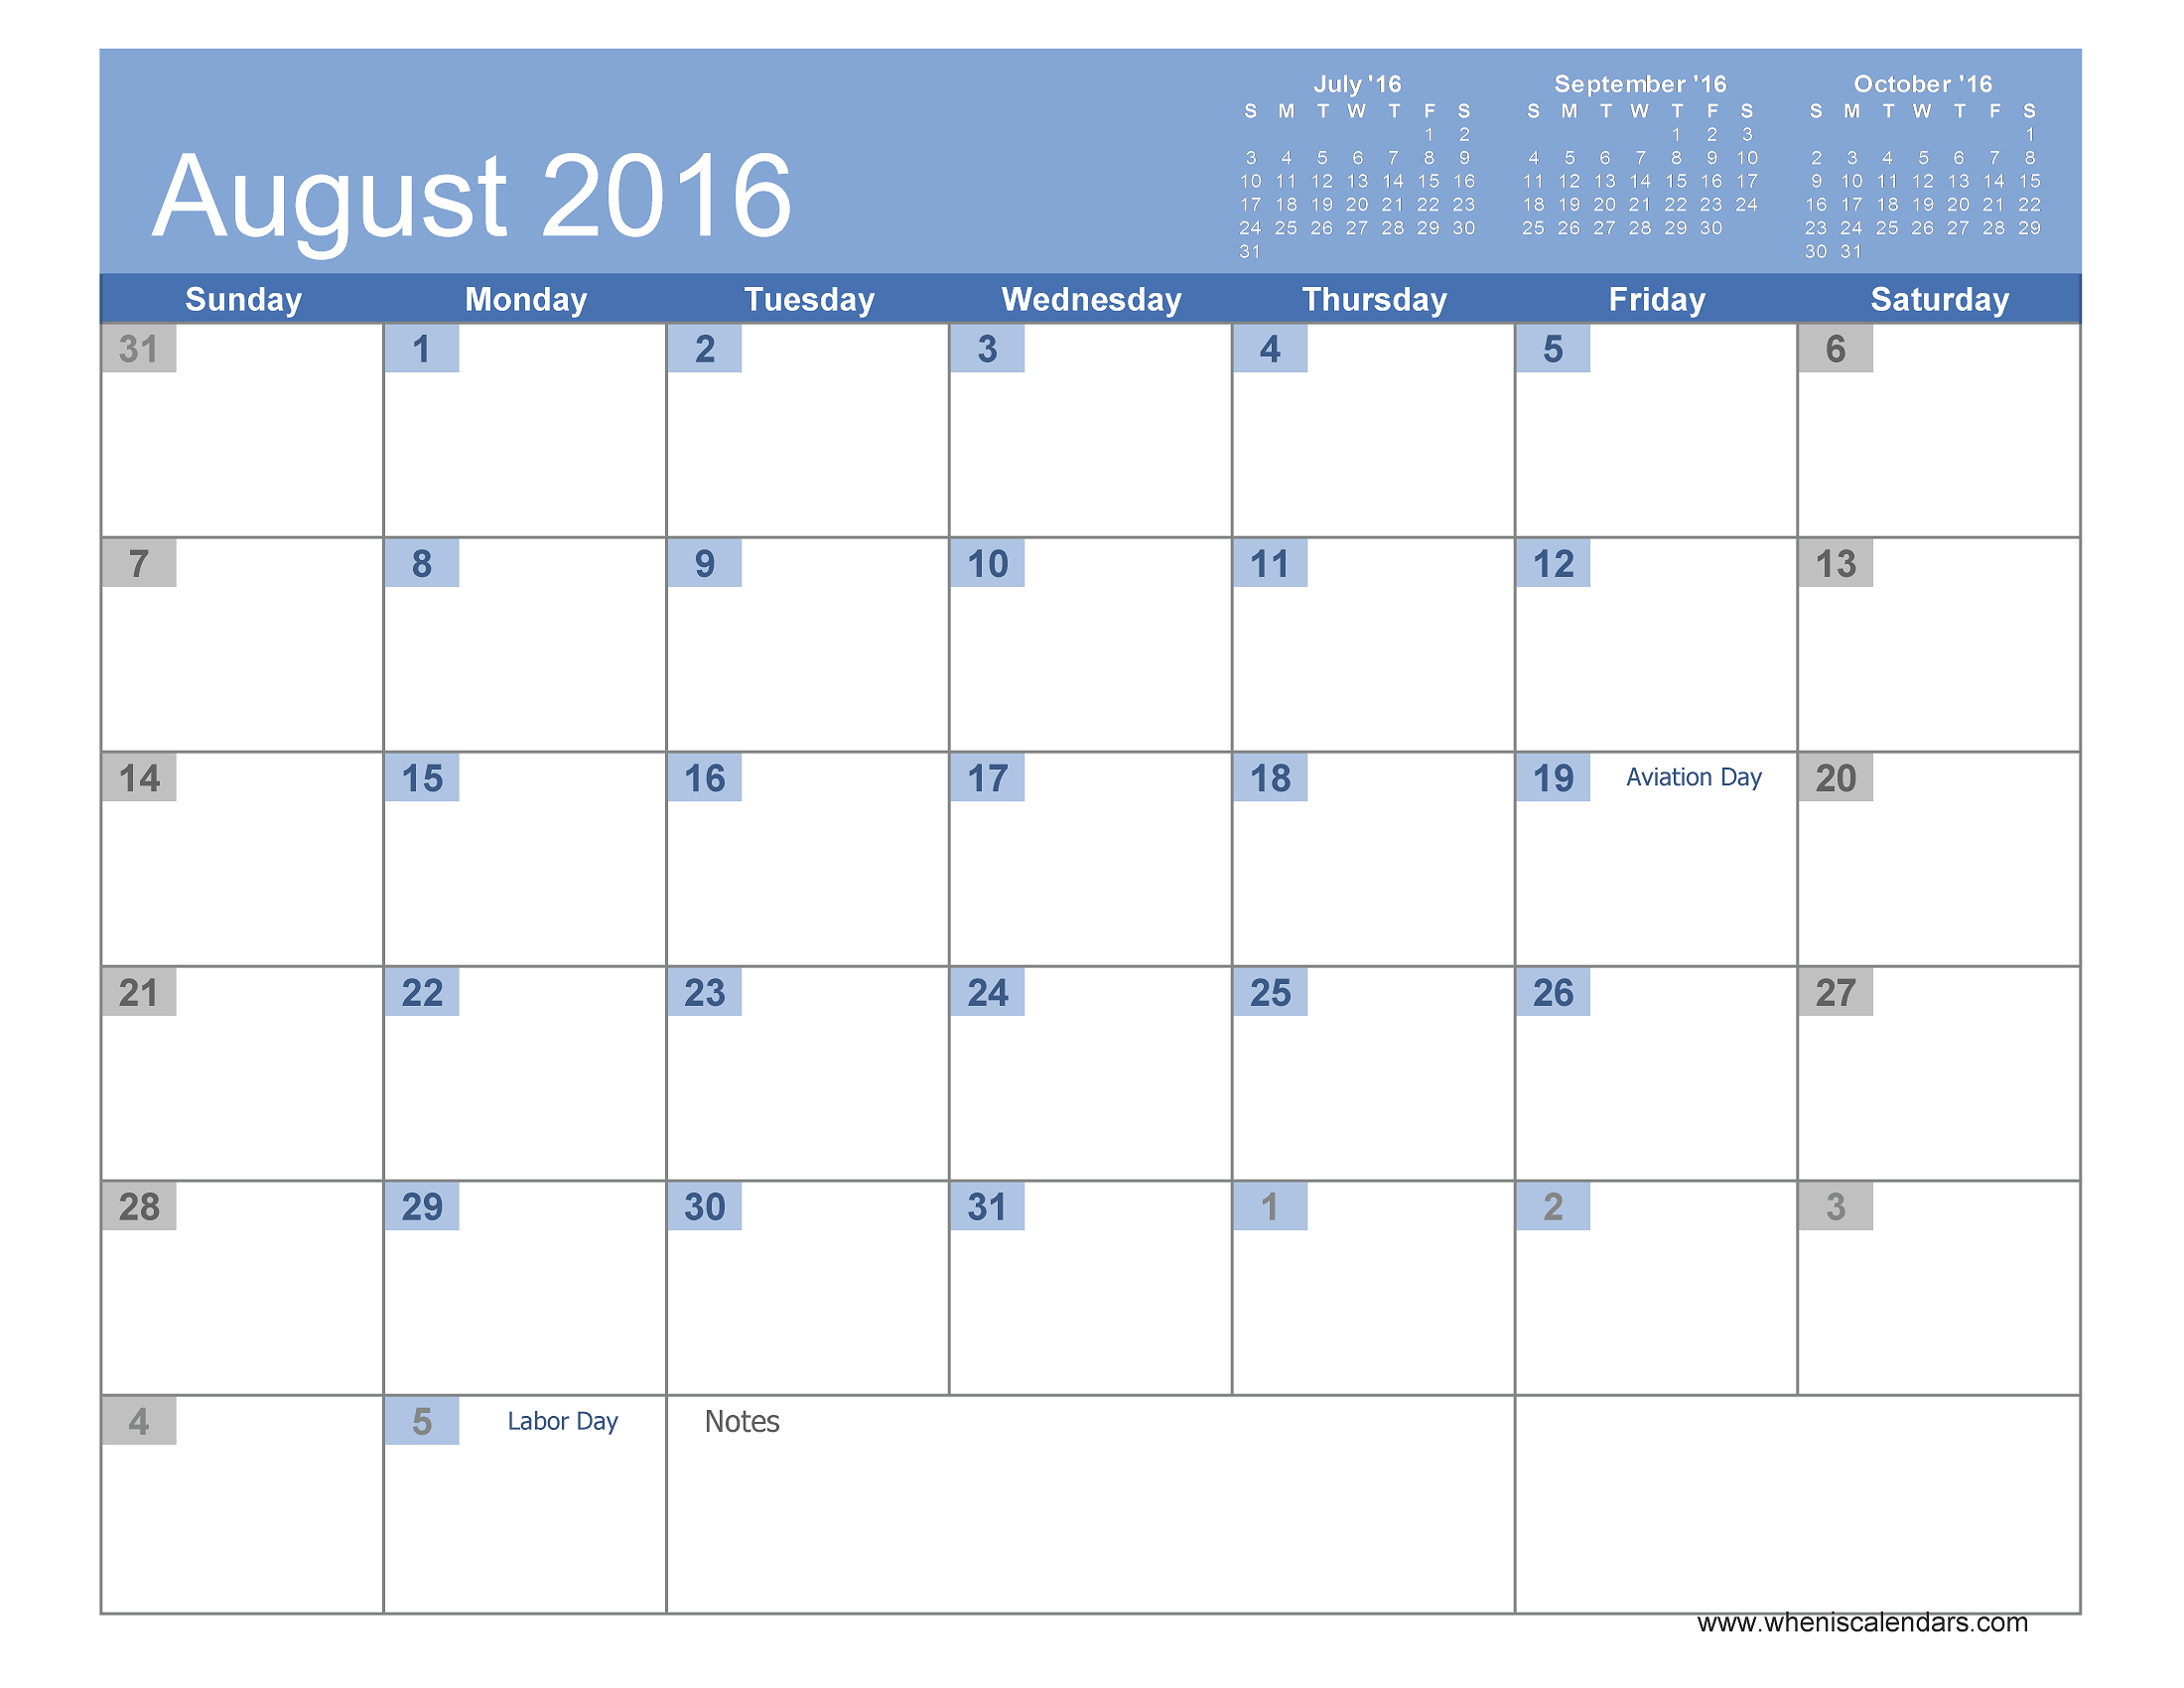 August 2016 Calendar Printable  Page 4 of 20  When is Calendar